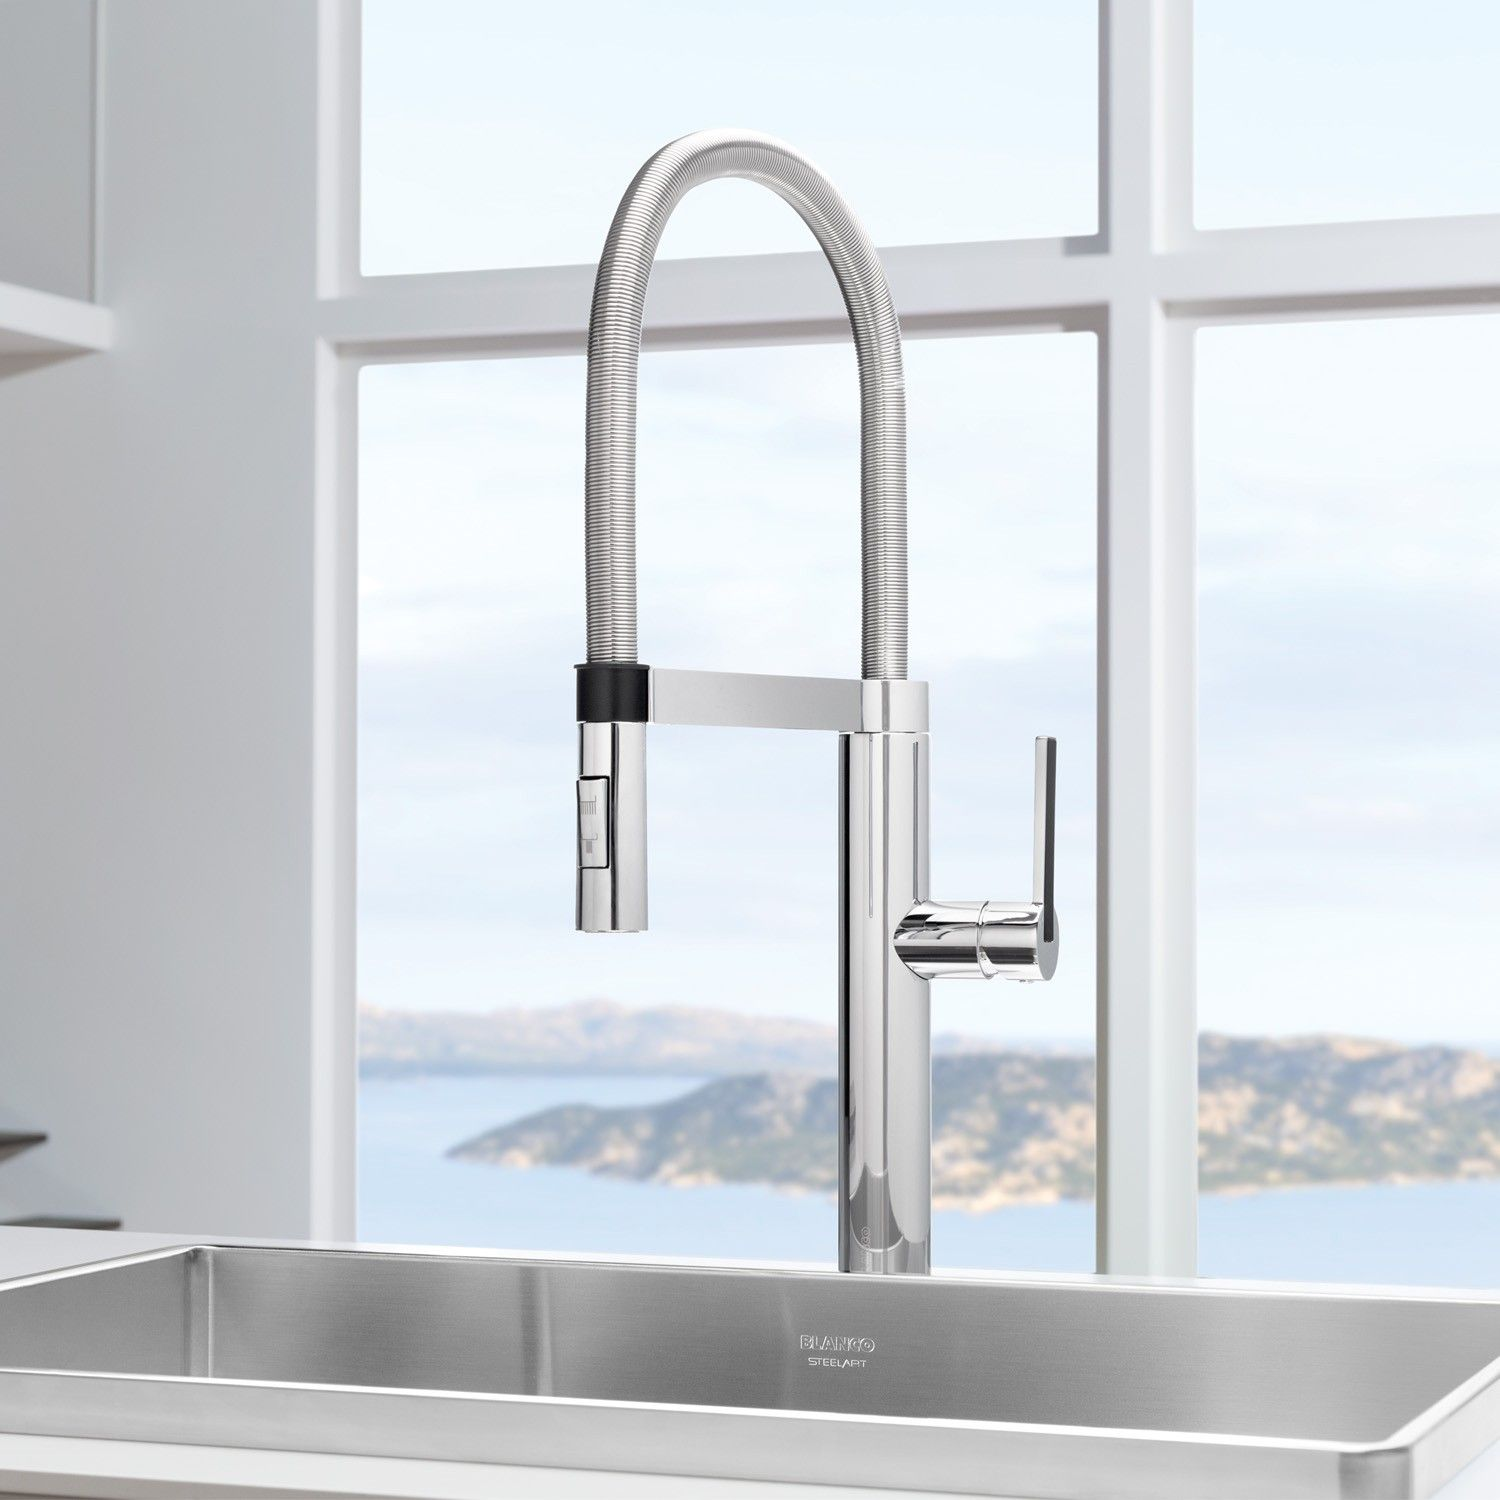 luxury picture parts faucets semi of blanco professional meridian kitchen images faucet